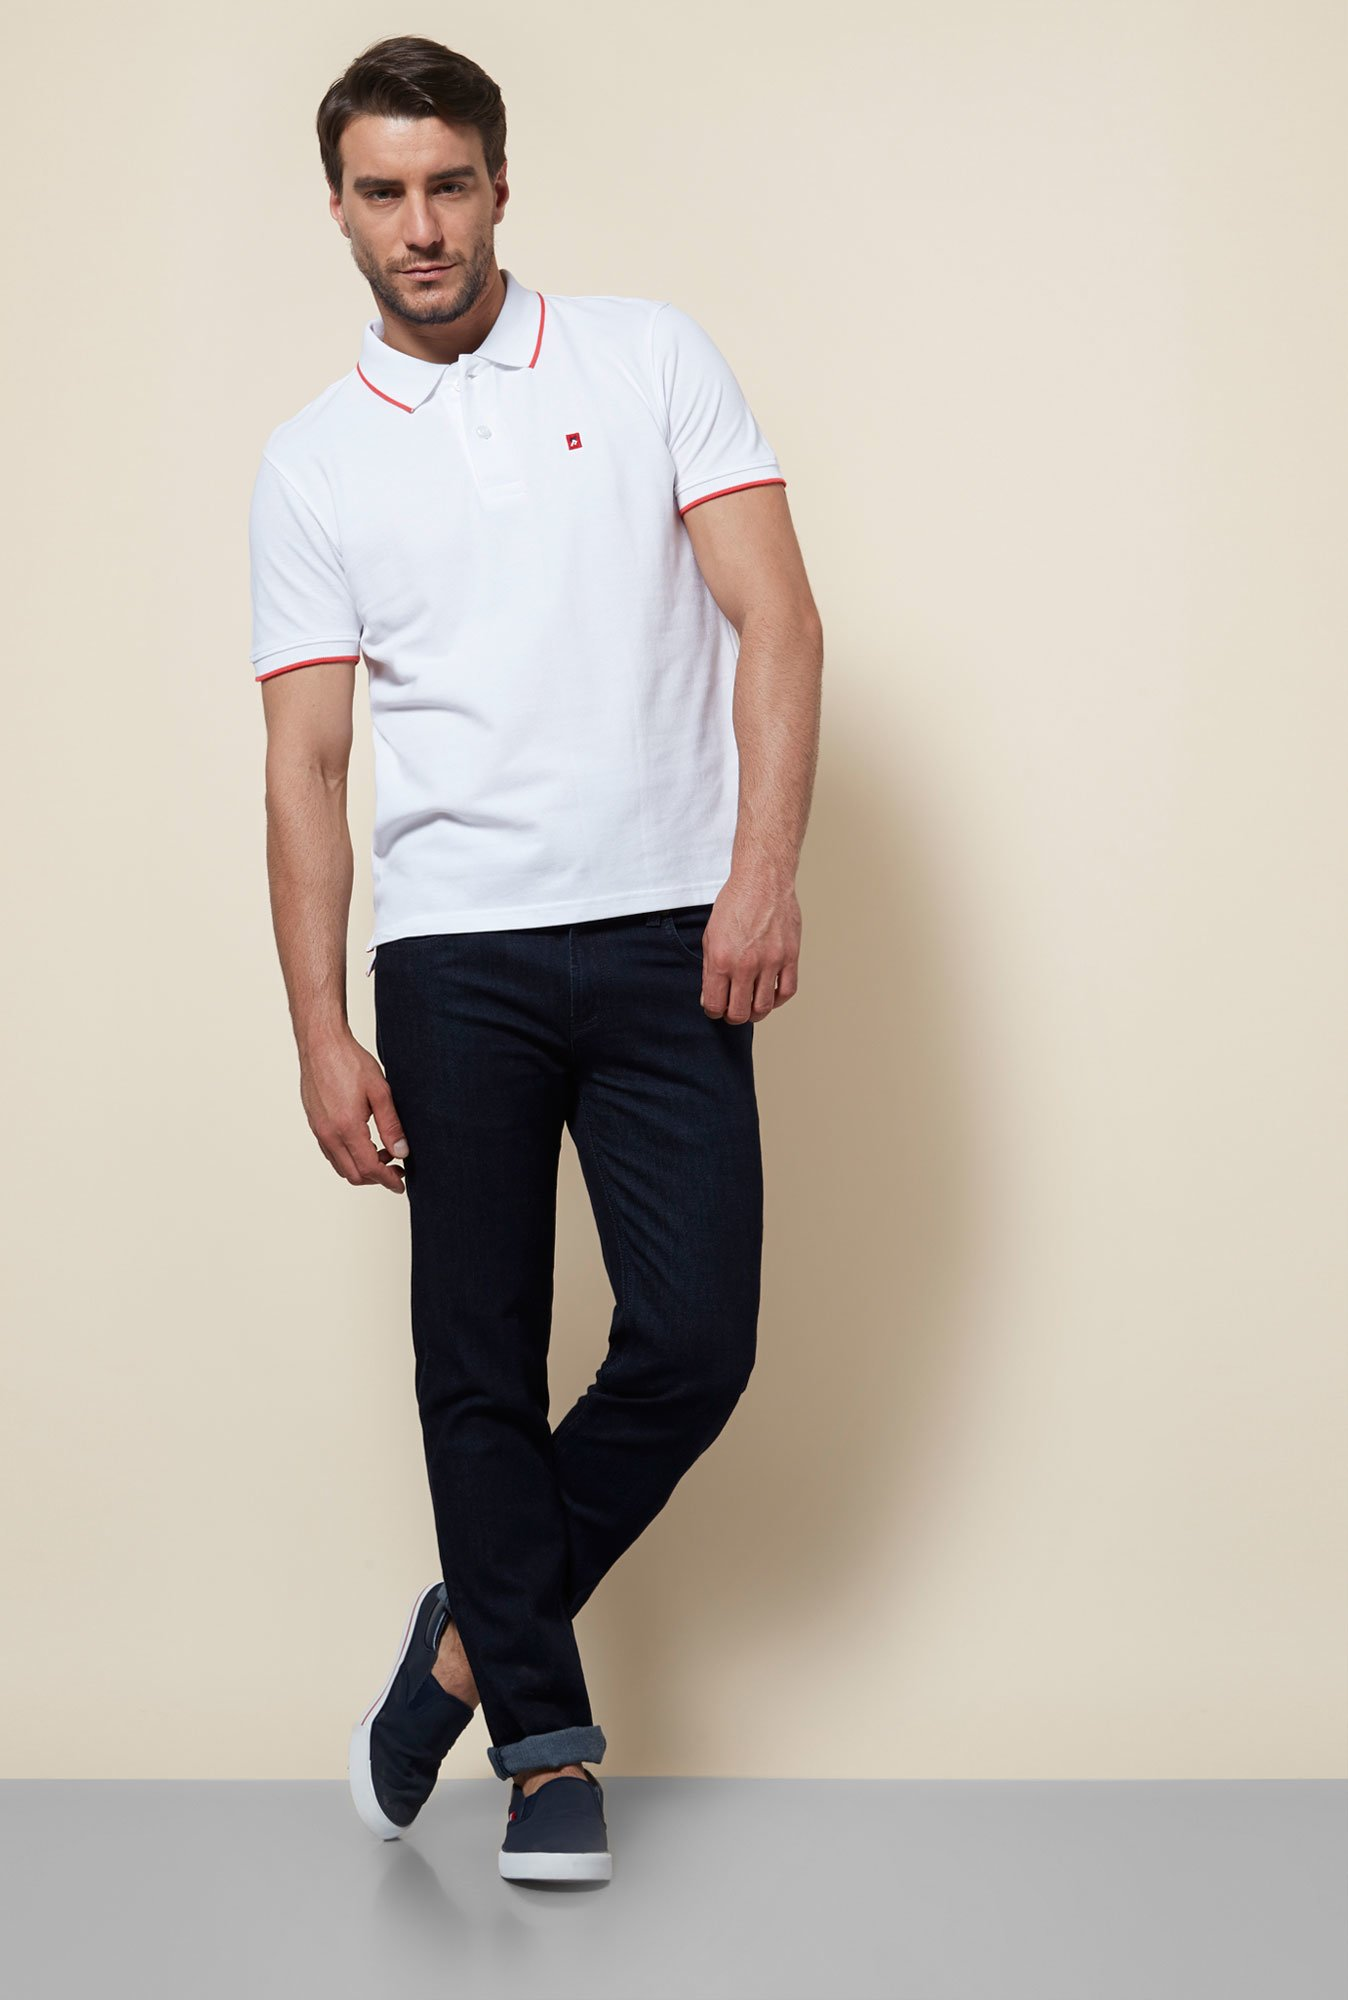 Provogue White Polo T Shirt